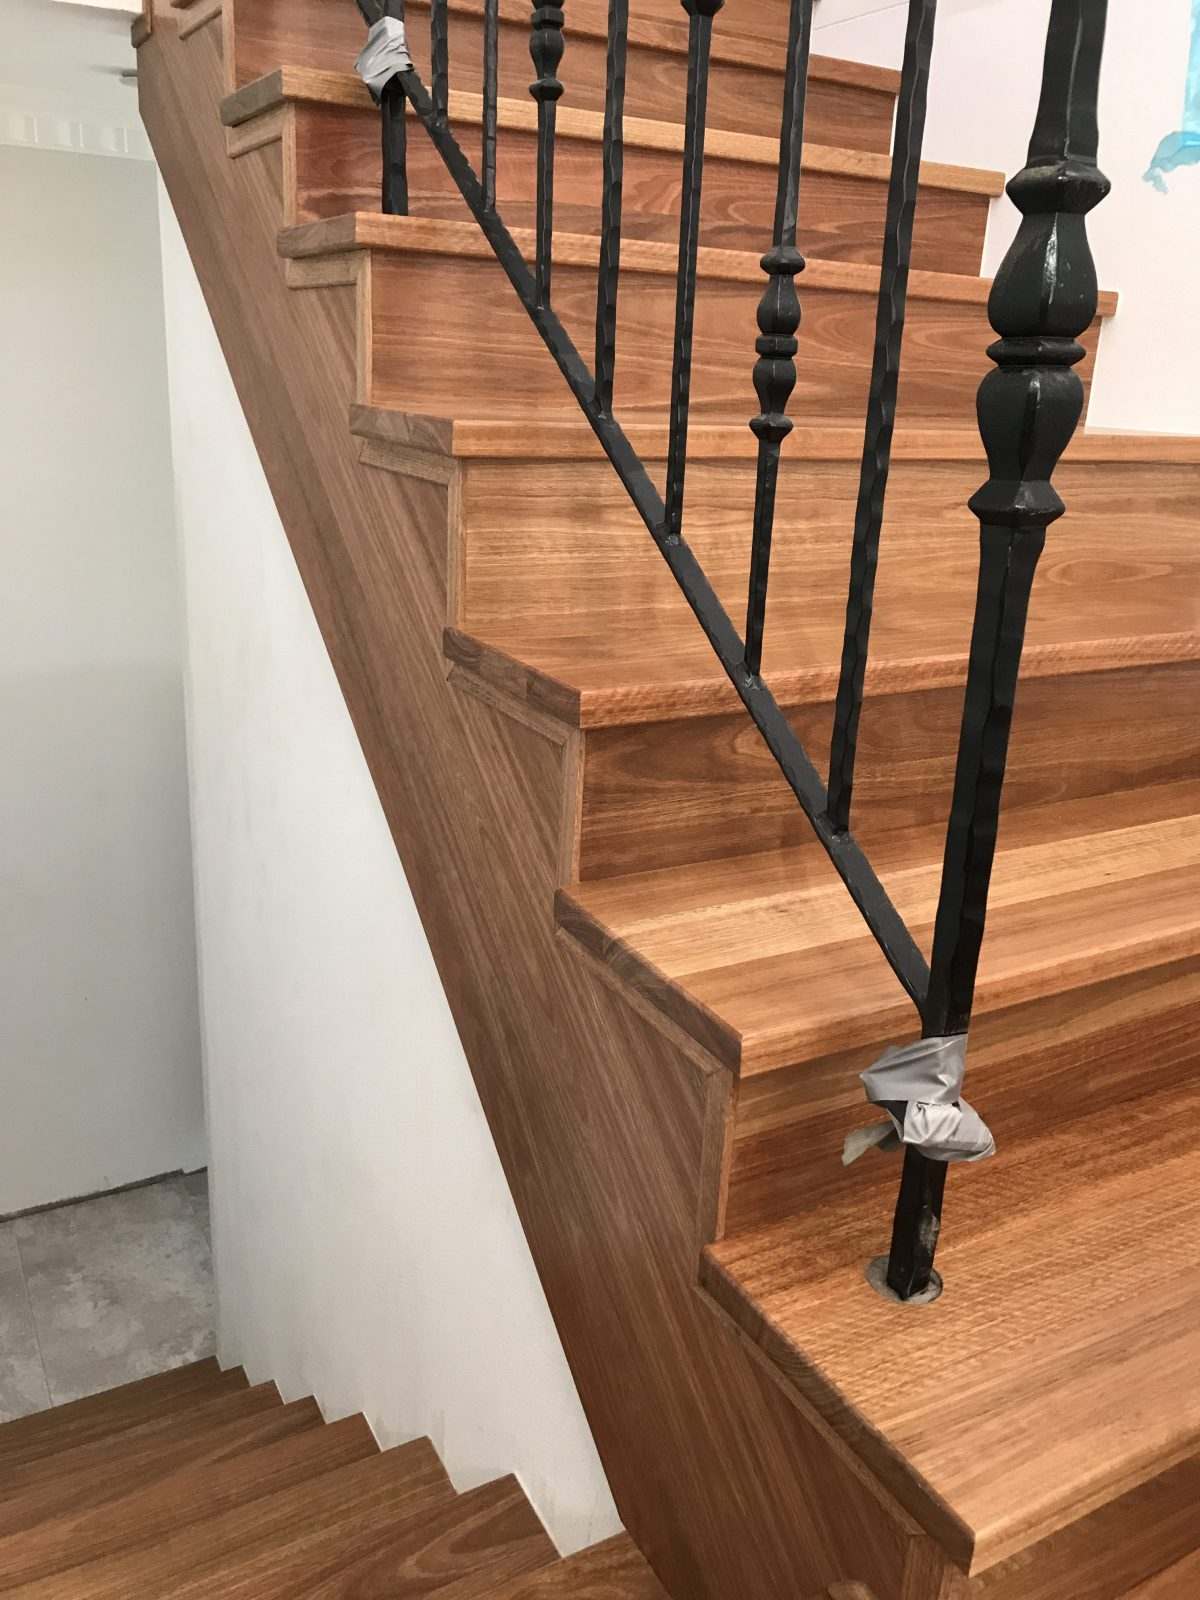 Work in progress - bespoke handrail fitted to solid treads installed over sawcut stringer | modern makeover of old staircase by Timber Floors Pty Ltd